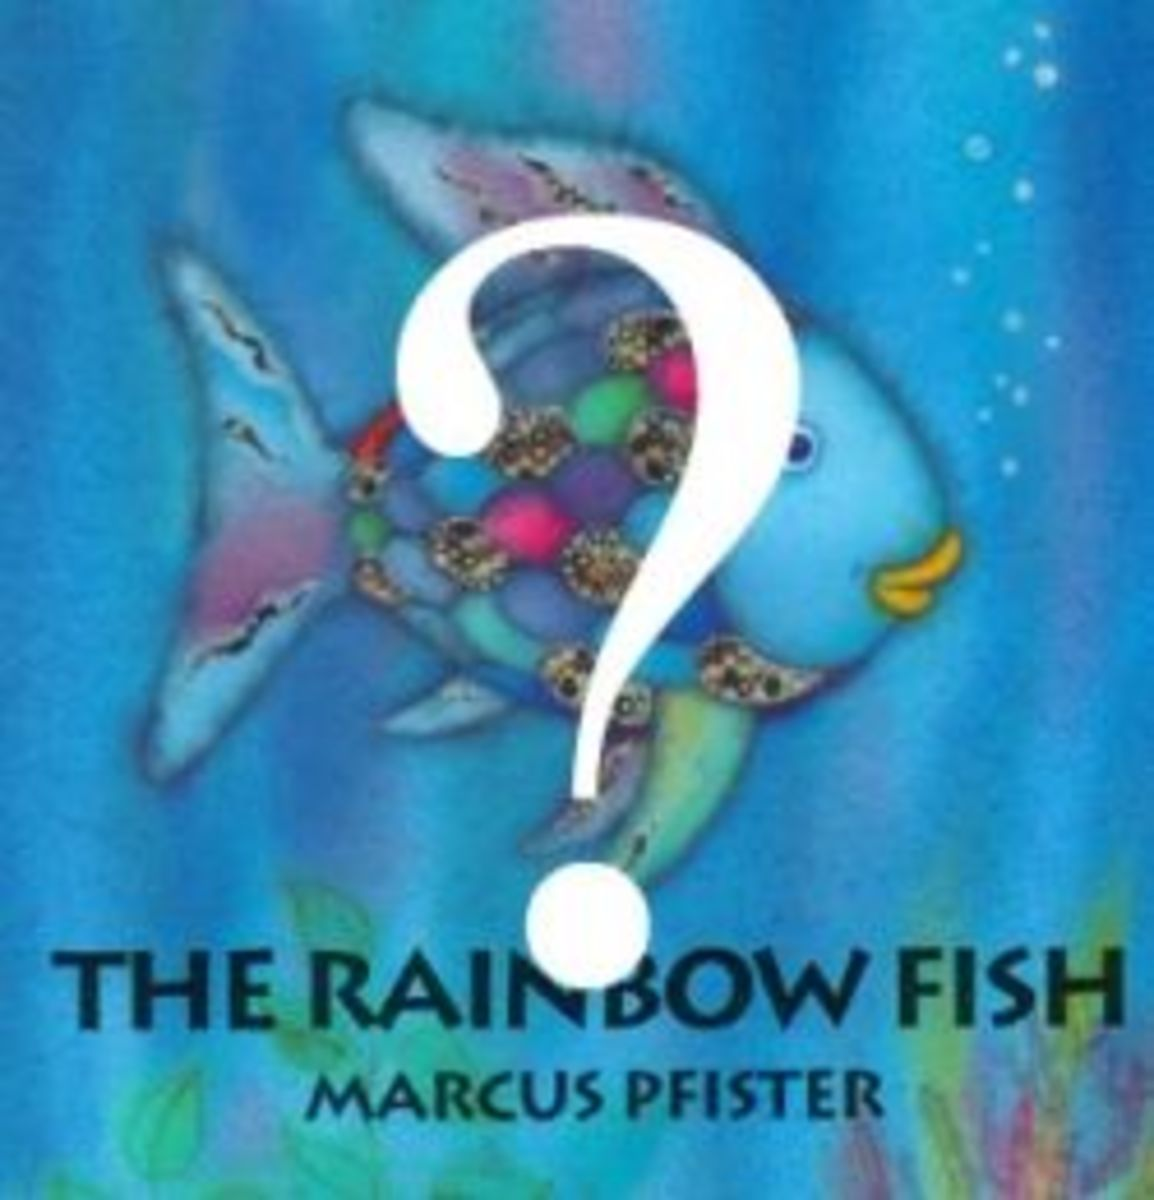 Does Rainbow Fish Promote Socialism? Materialism? Uniformity? Or Sharing?